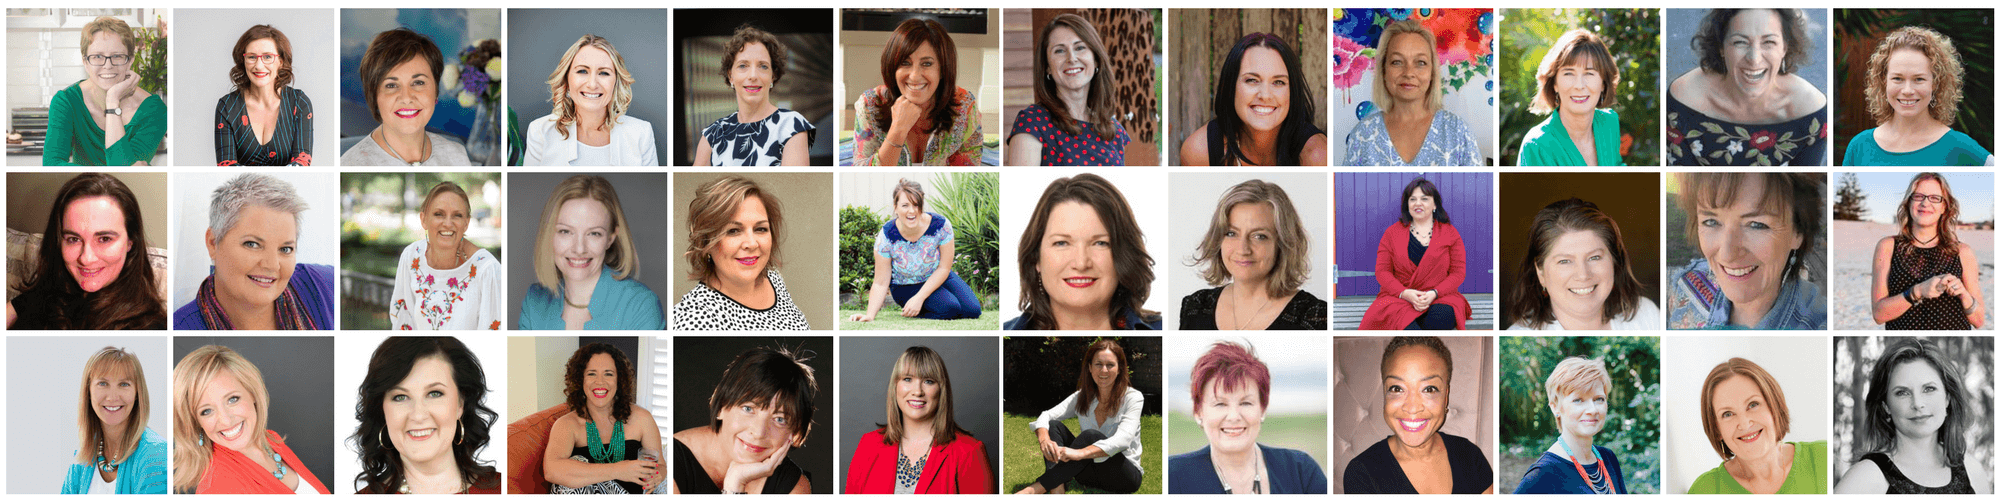 Business Coaching for women 40+